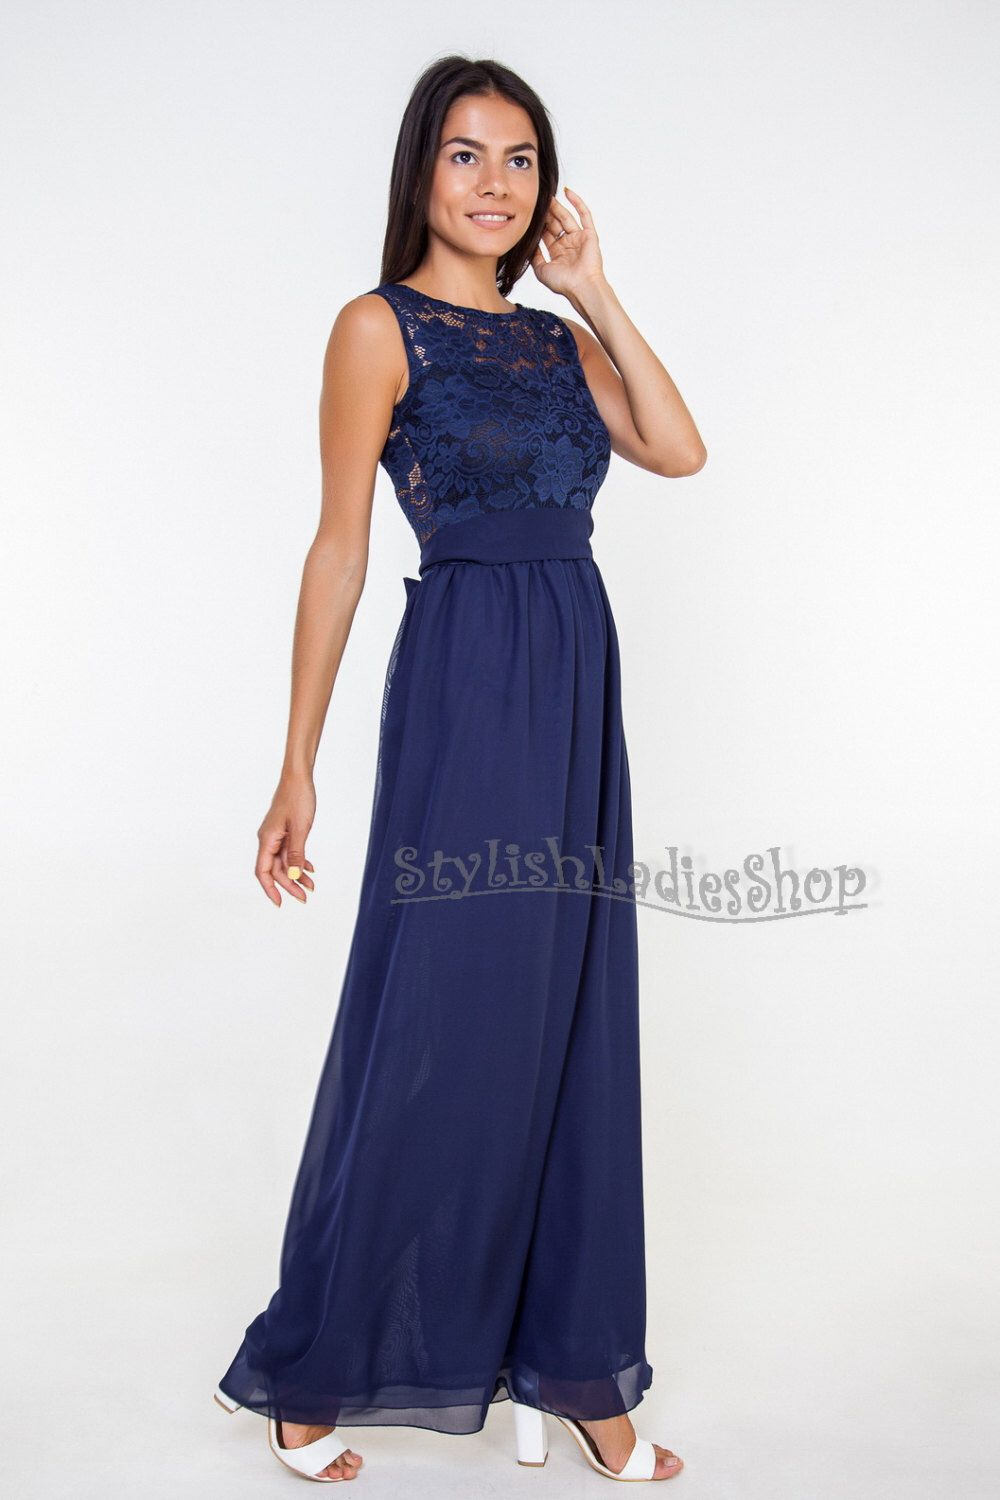 Bridesmaid dress navy blue long bridesmaid navy lace bridesmaid dark